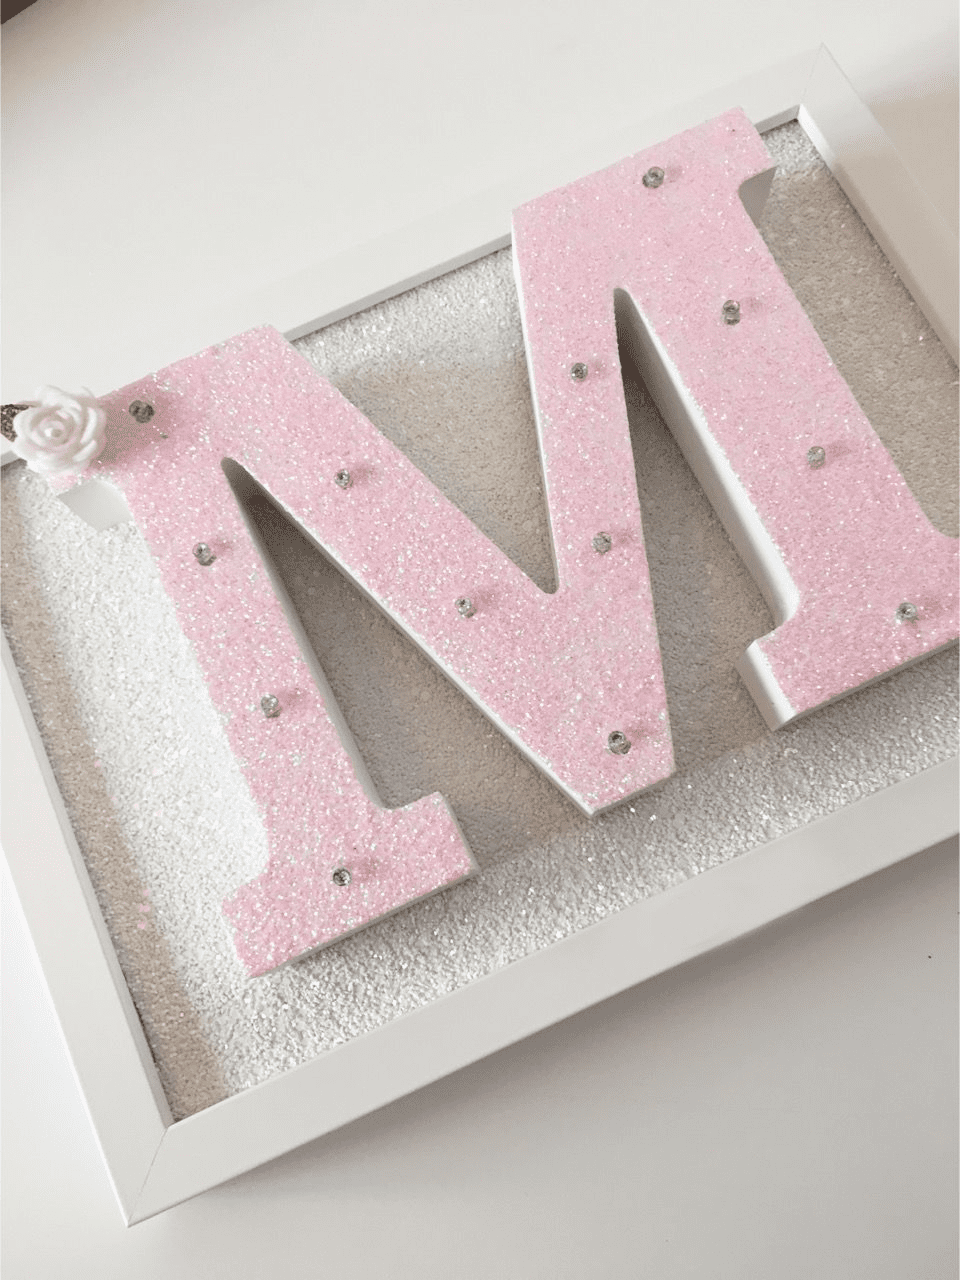 personalised-glitter-letter-light-frame-[5]-11801-p.png